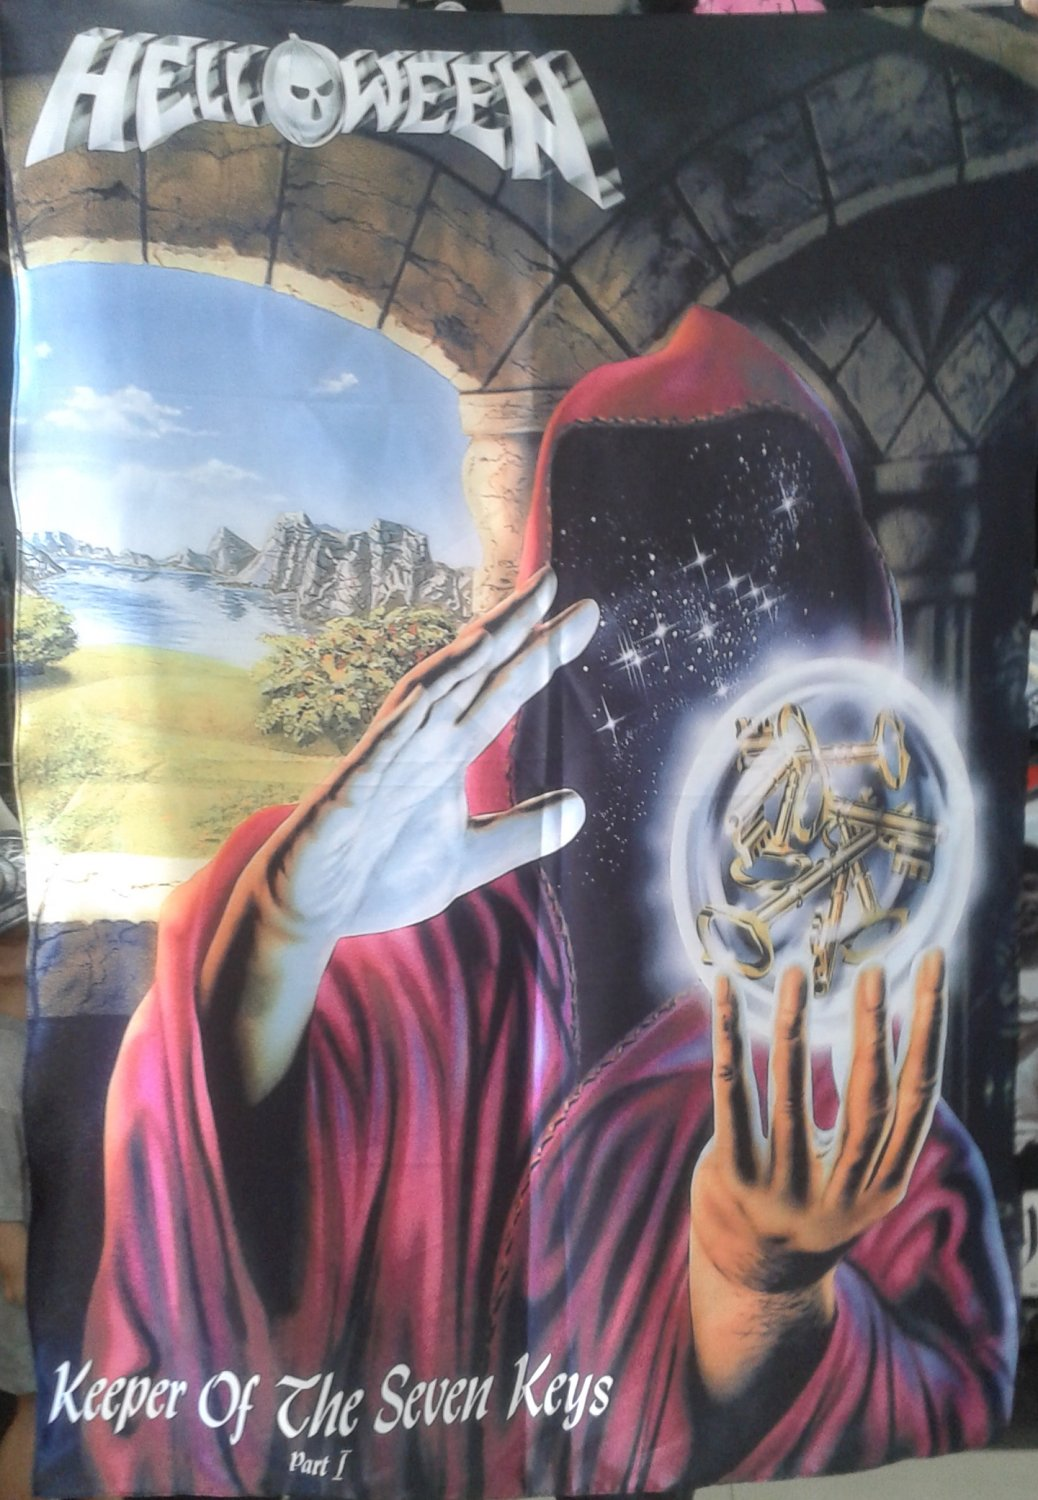 HELLOWEEN Keeper of the Seven Keys - Part I FLAG CLOTH POSTER WALL TAPESTRY BANNER Power Metal